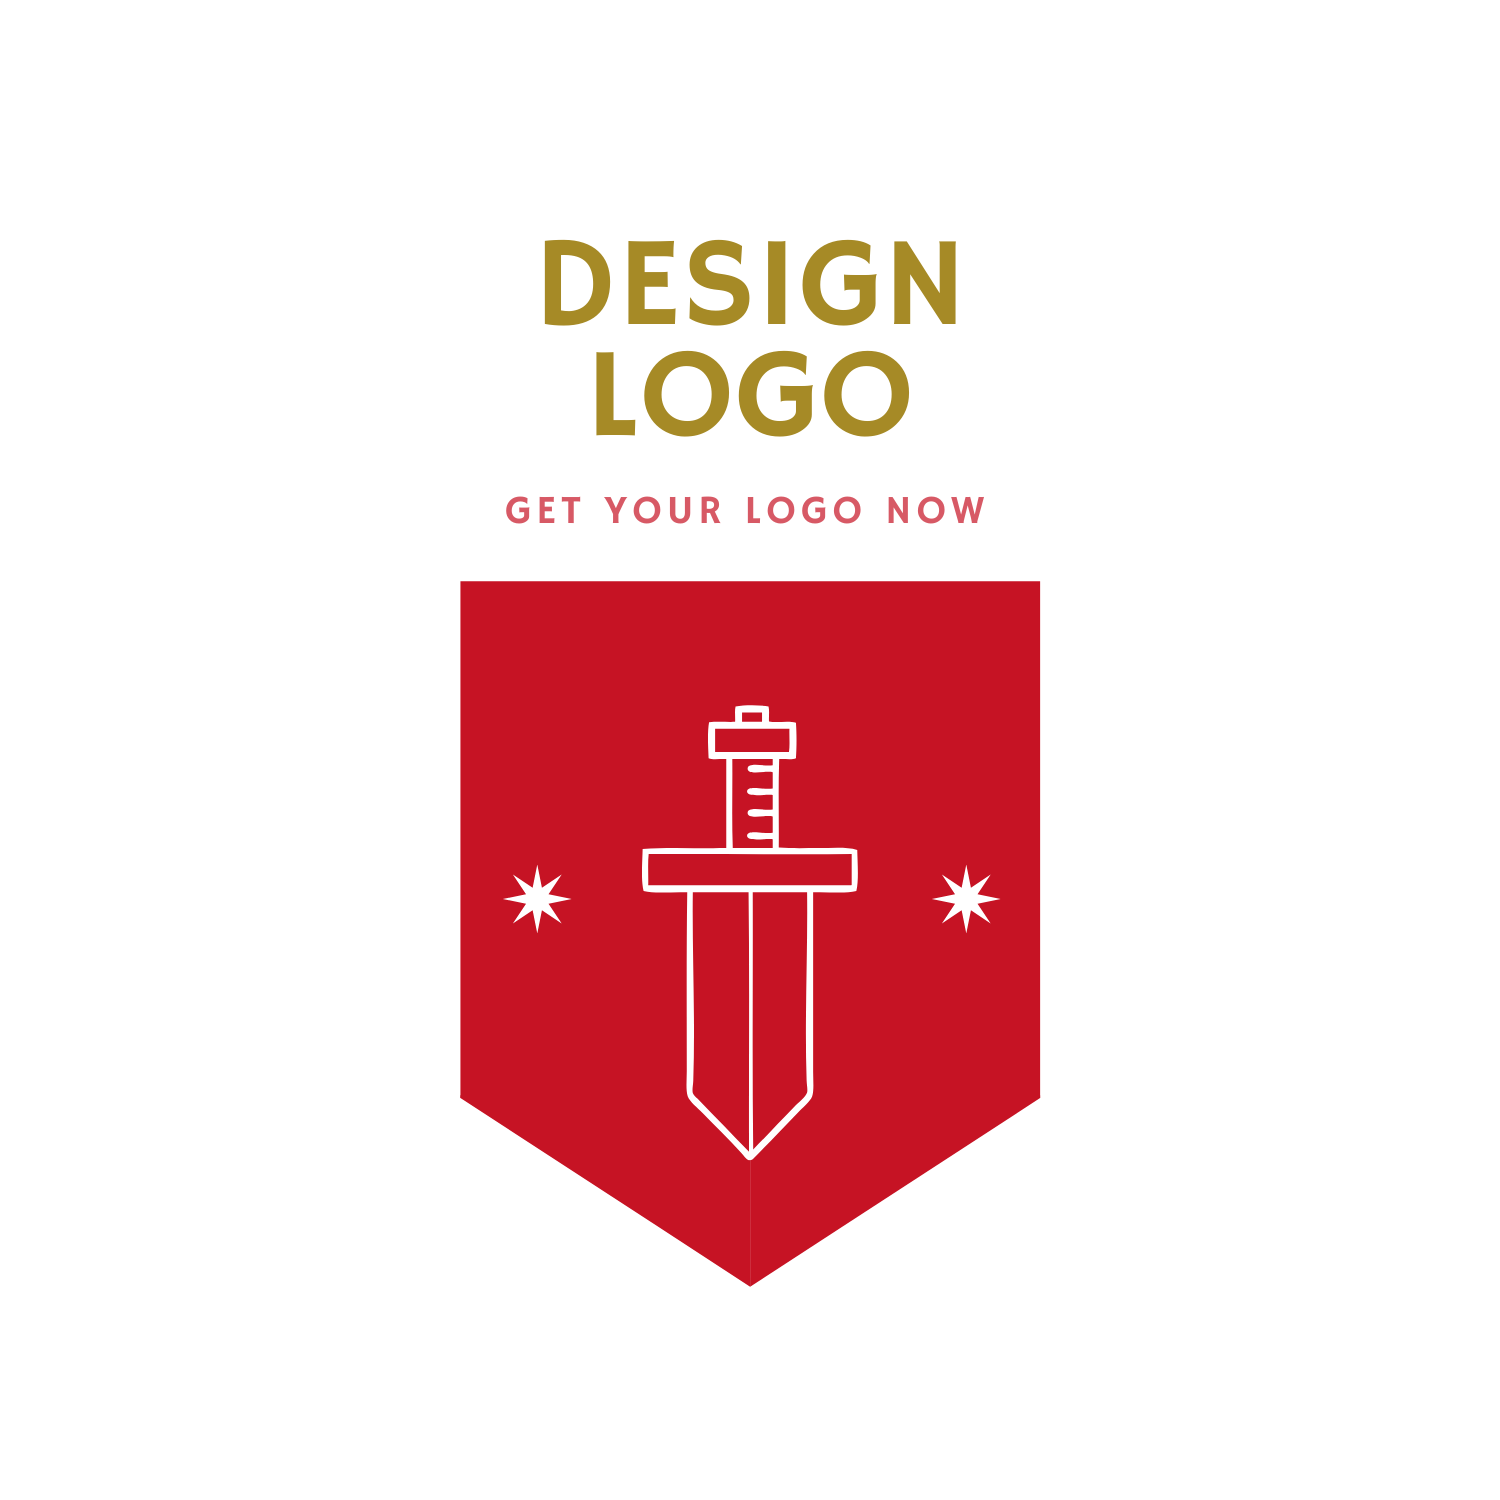 I will design any type of professional logo